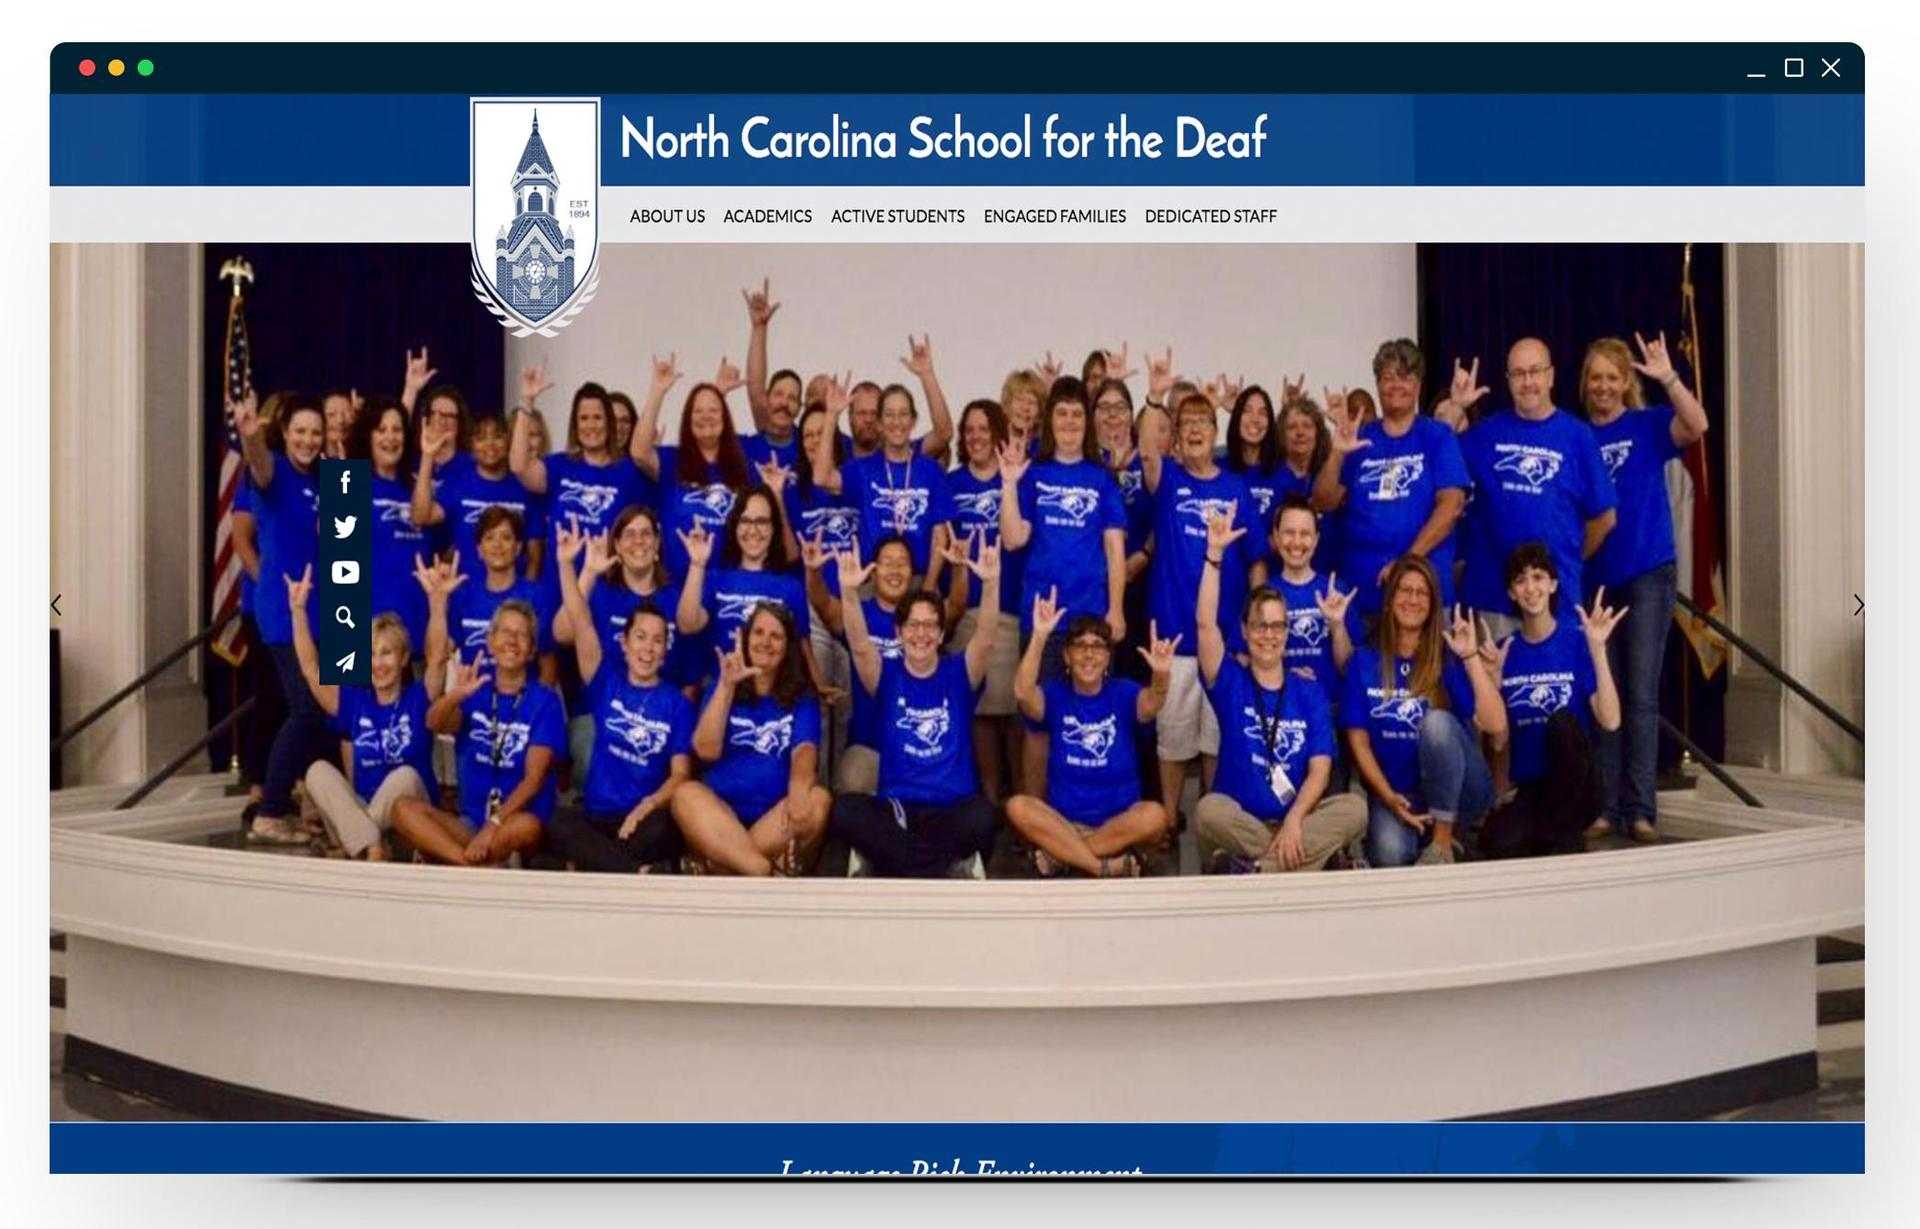 The North Carolina School for the Deaf